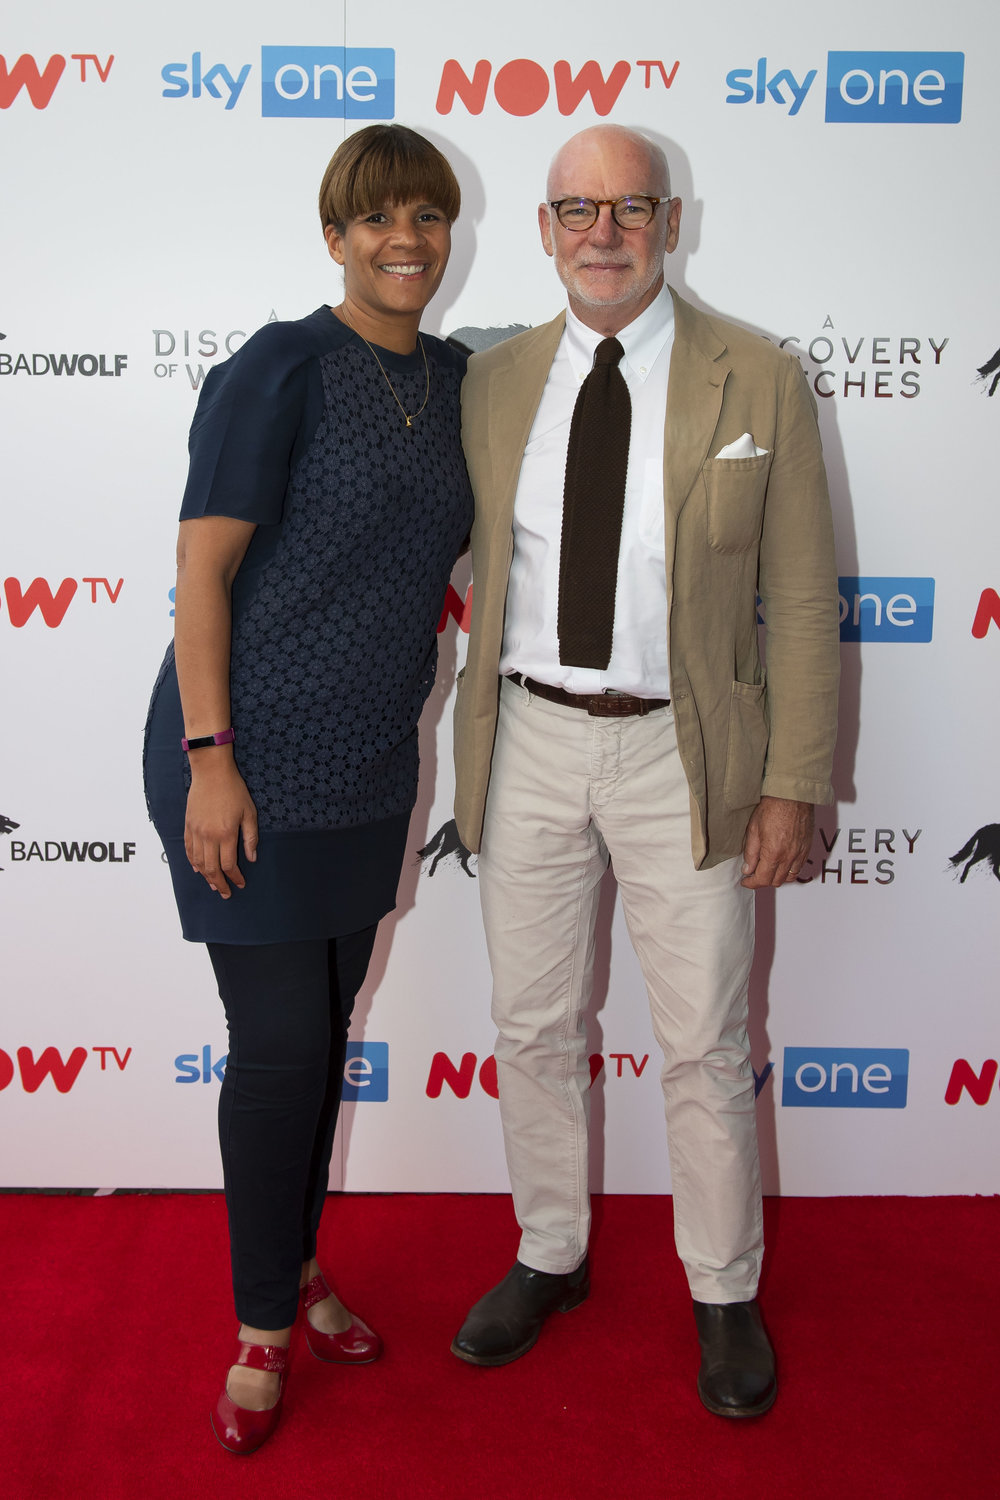 CARDIFF, WALES - SEPTEMBER 05: Anne Mensah, head of drama at Sky, and Gary Davey, managing director of Sky content, attend the UK Premiere of 'A Discovery Of Witches' at Cineworld on September 5, 2018 in Cardiff, Wales. (Photo by Matthew Horwood/Getty Images)